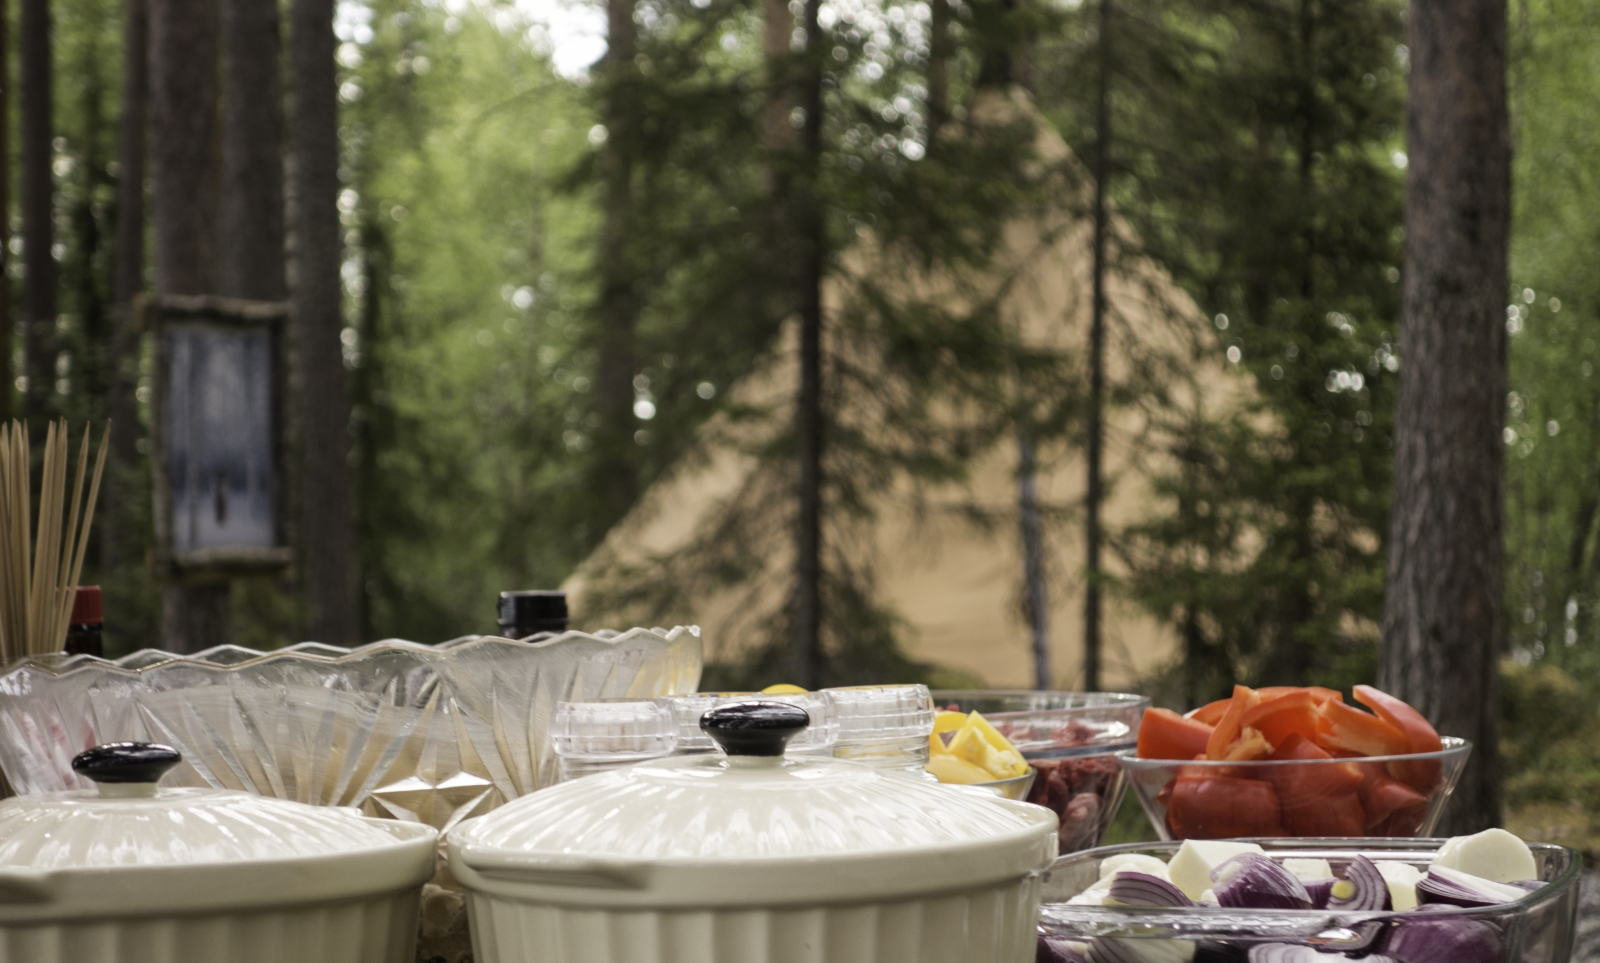 Swedish Lapland Summer Camp - Camping in Sweden in the Summer